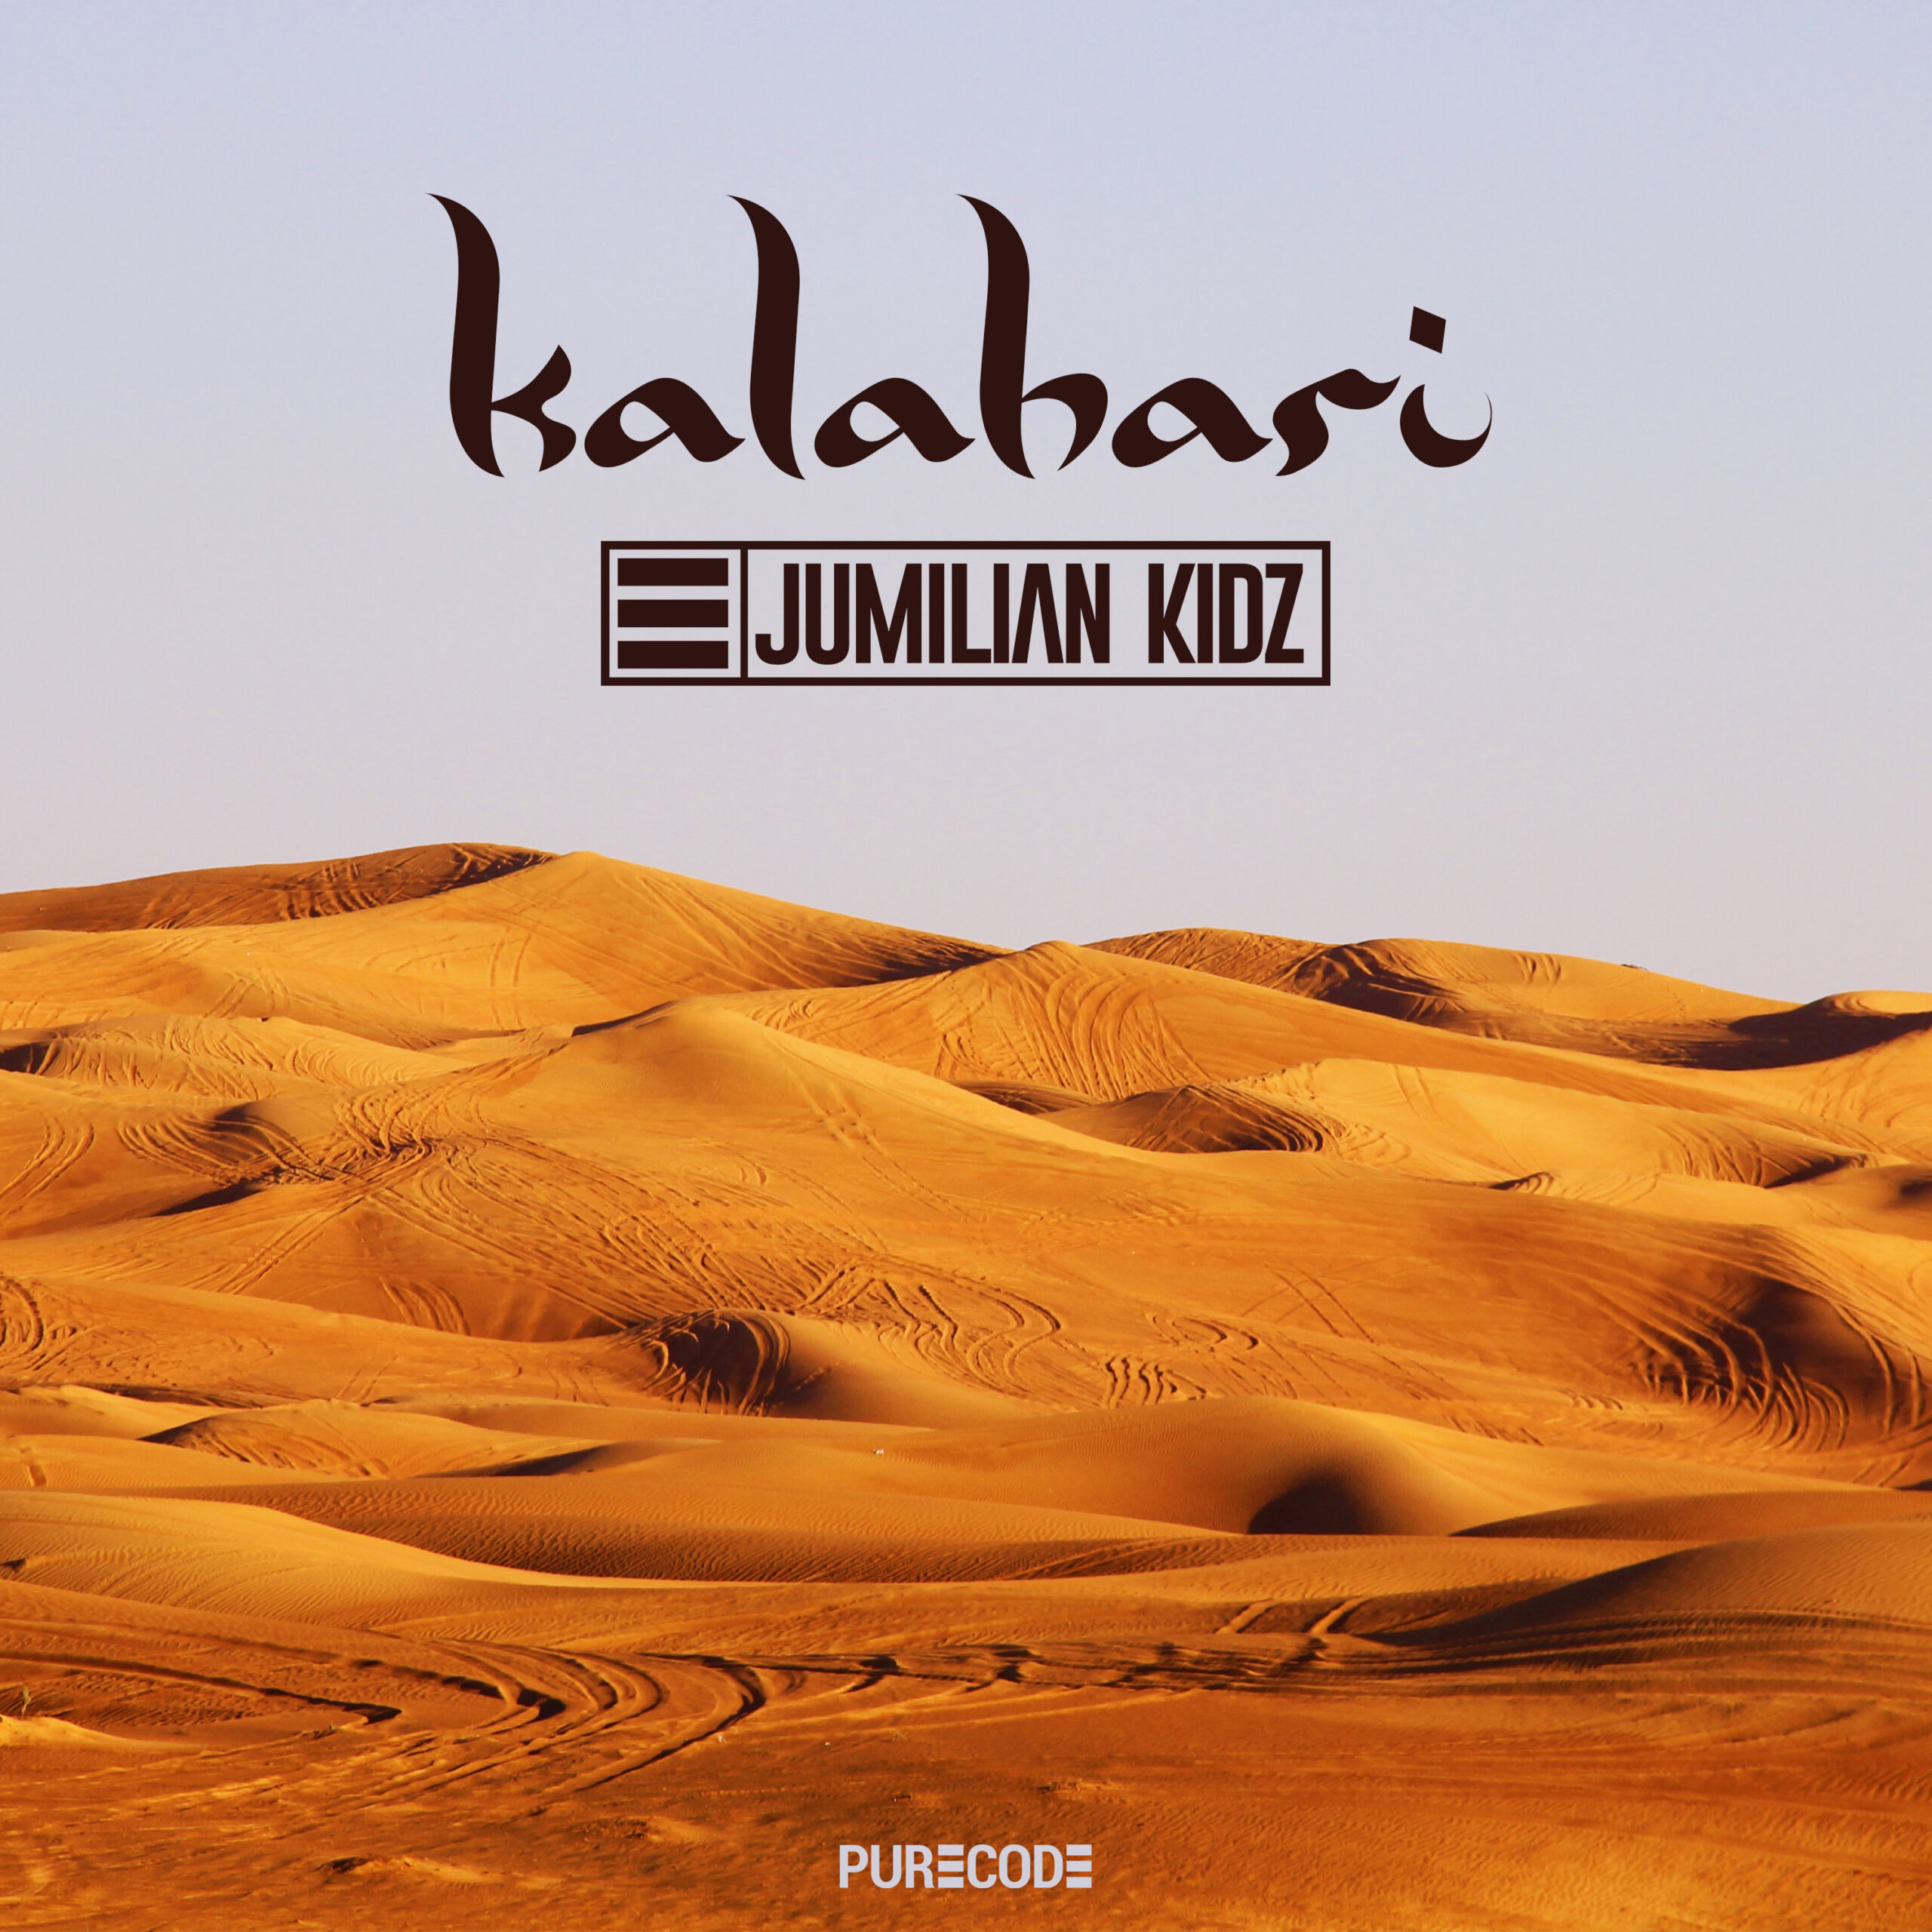 Kalahari by Jumilian Kidz (Artwork)